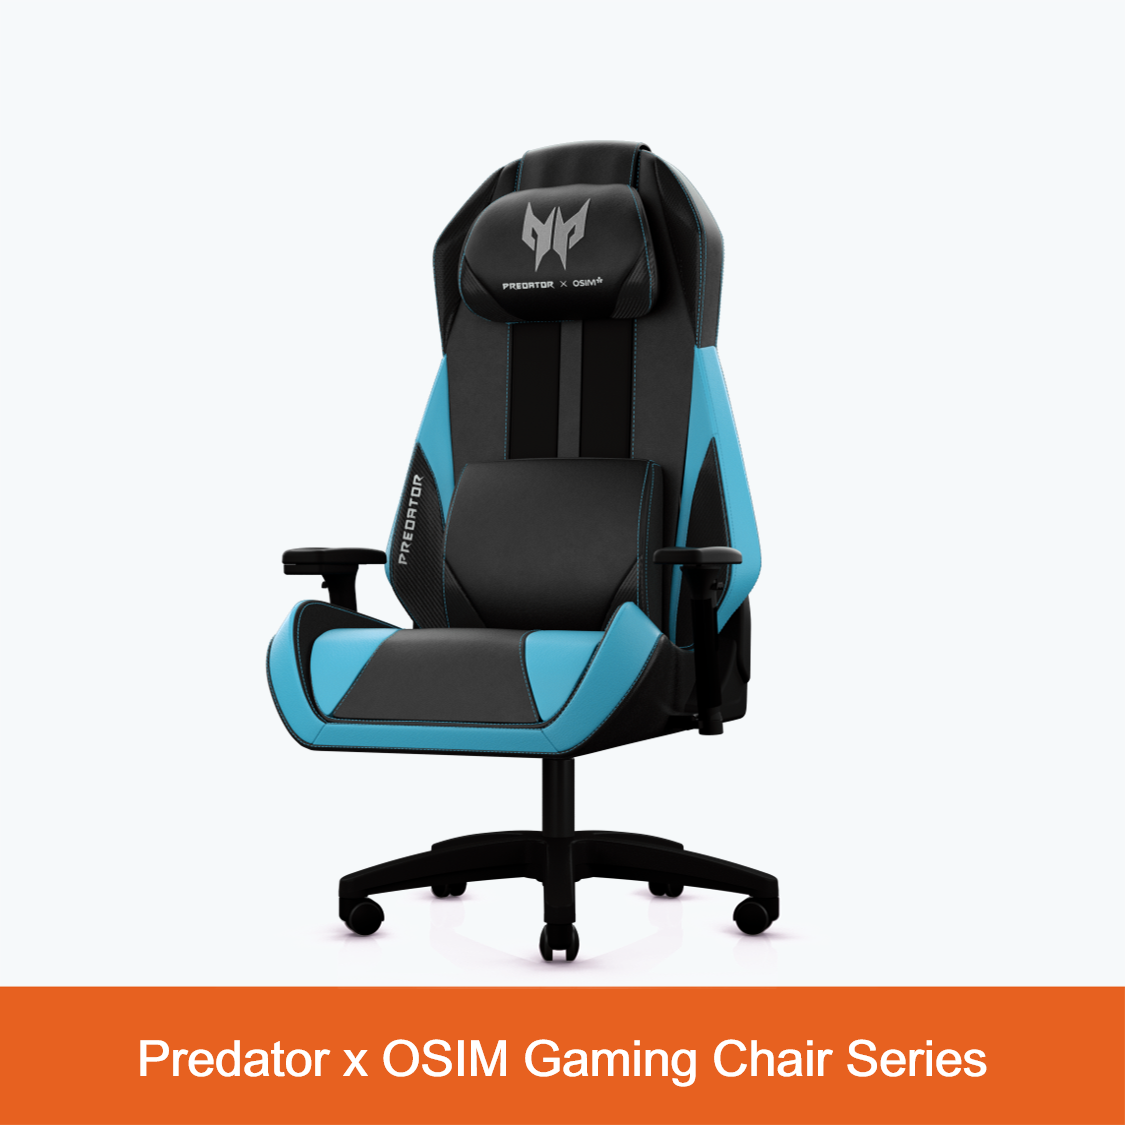 Predator x OSIM Gaming Chair Pre-order [Est Delivery by End Feb 2021]